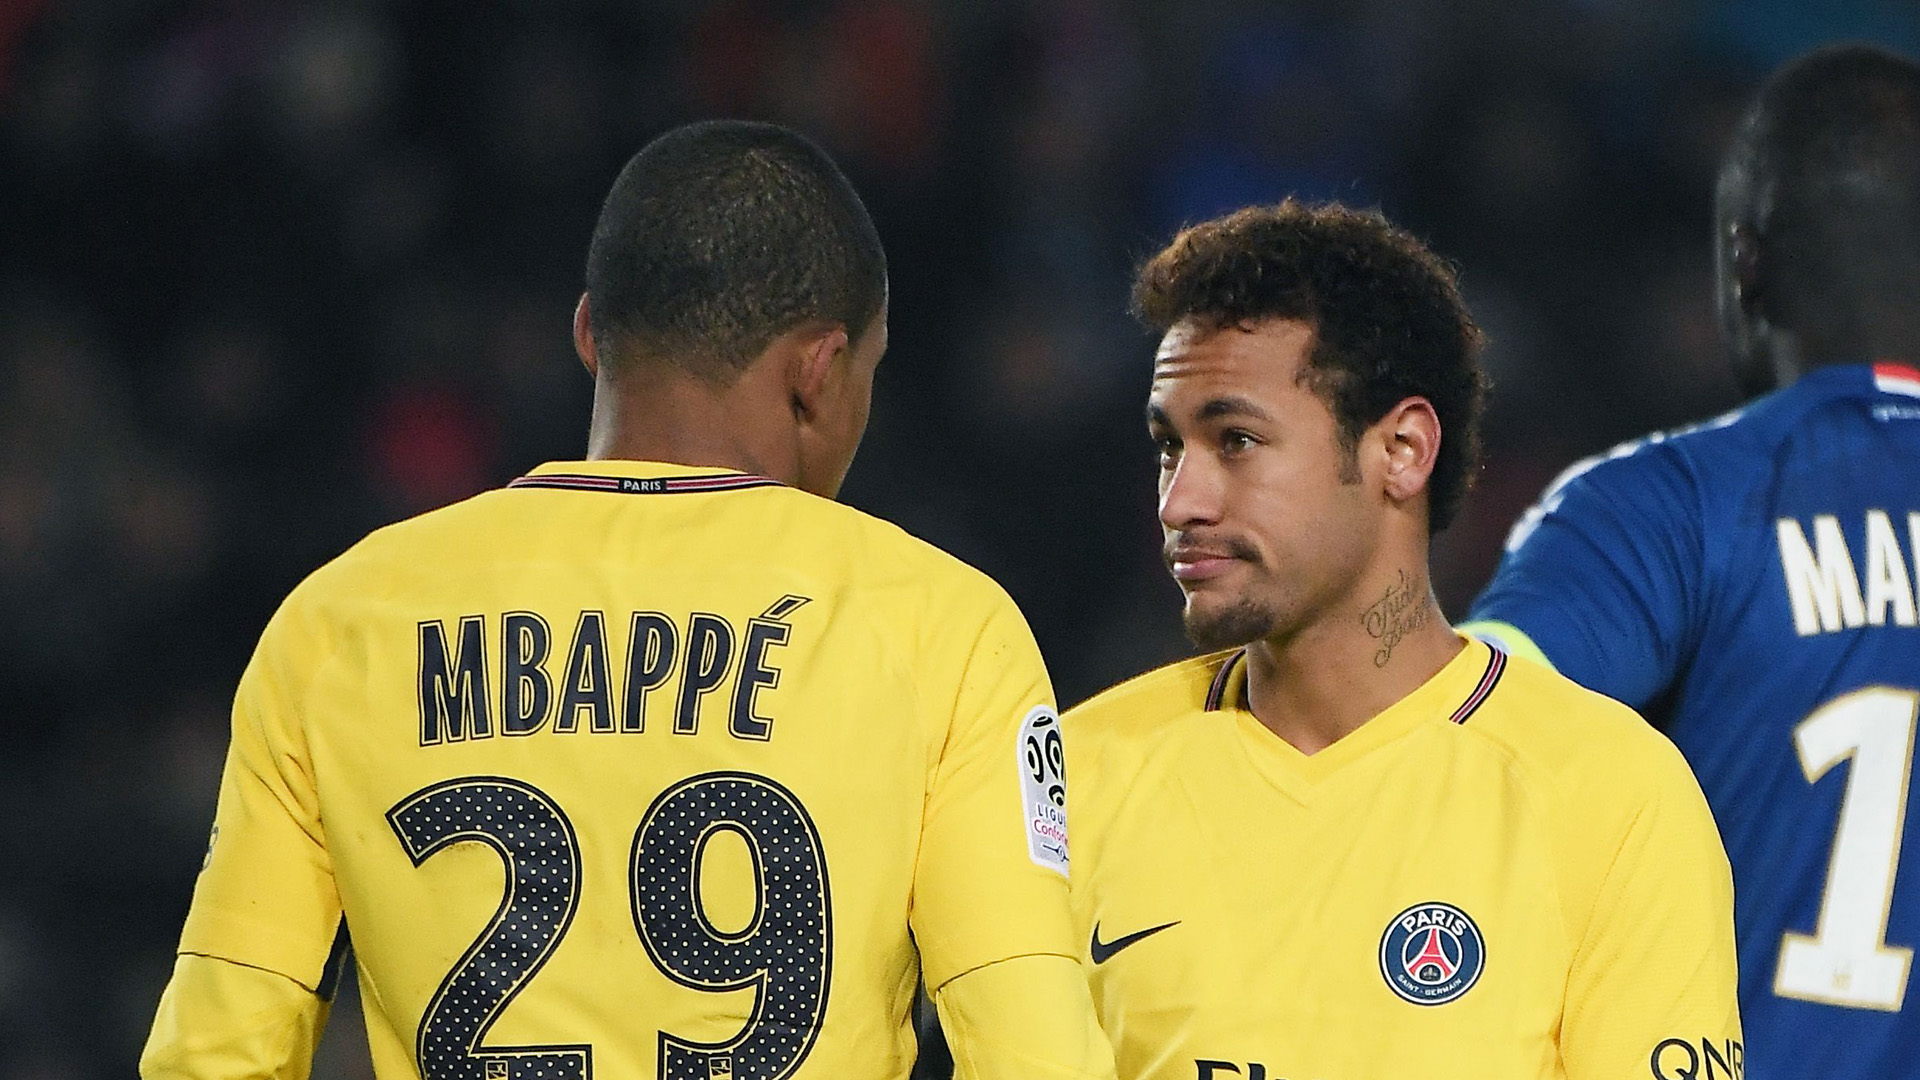 PSG stunned by Strasbourg in first defeat of season